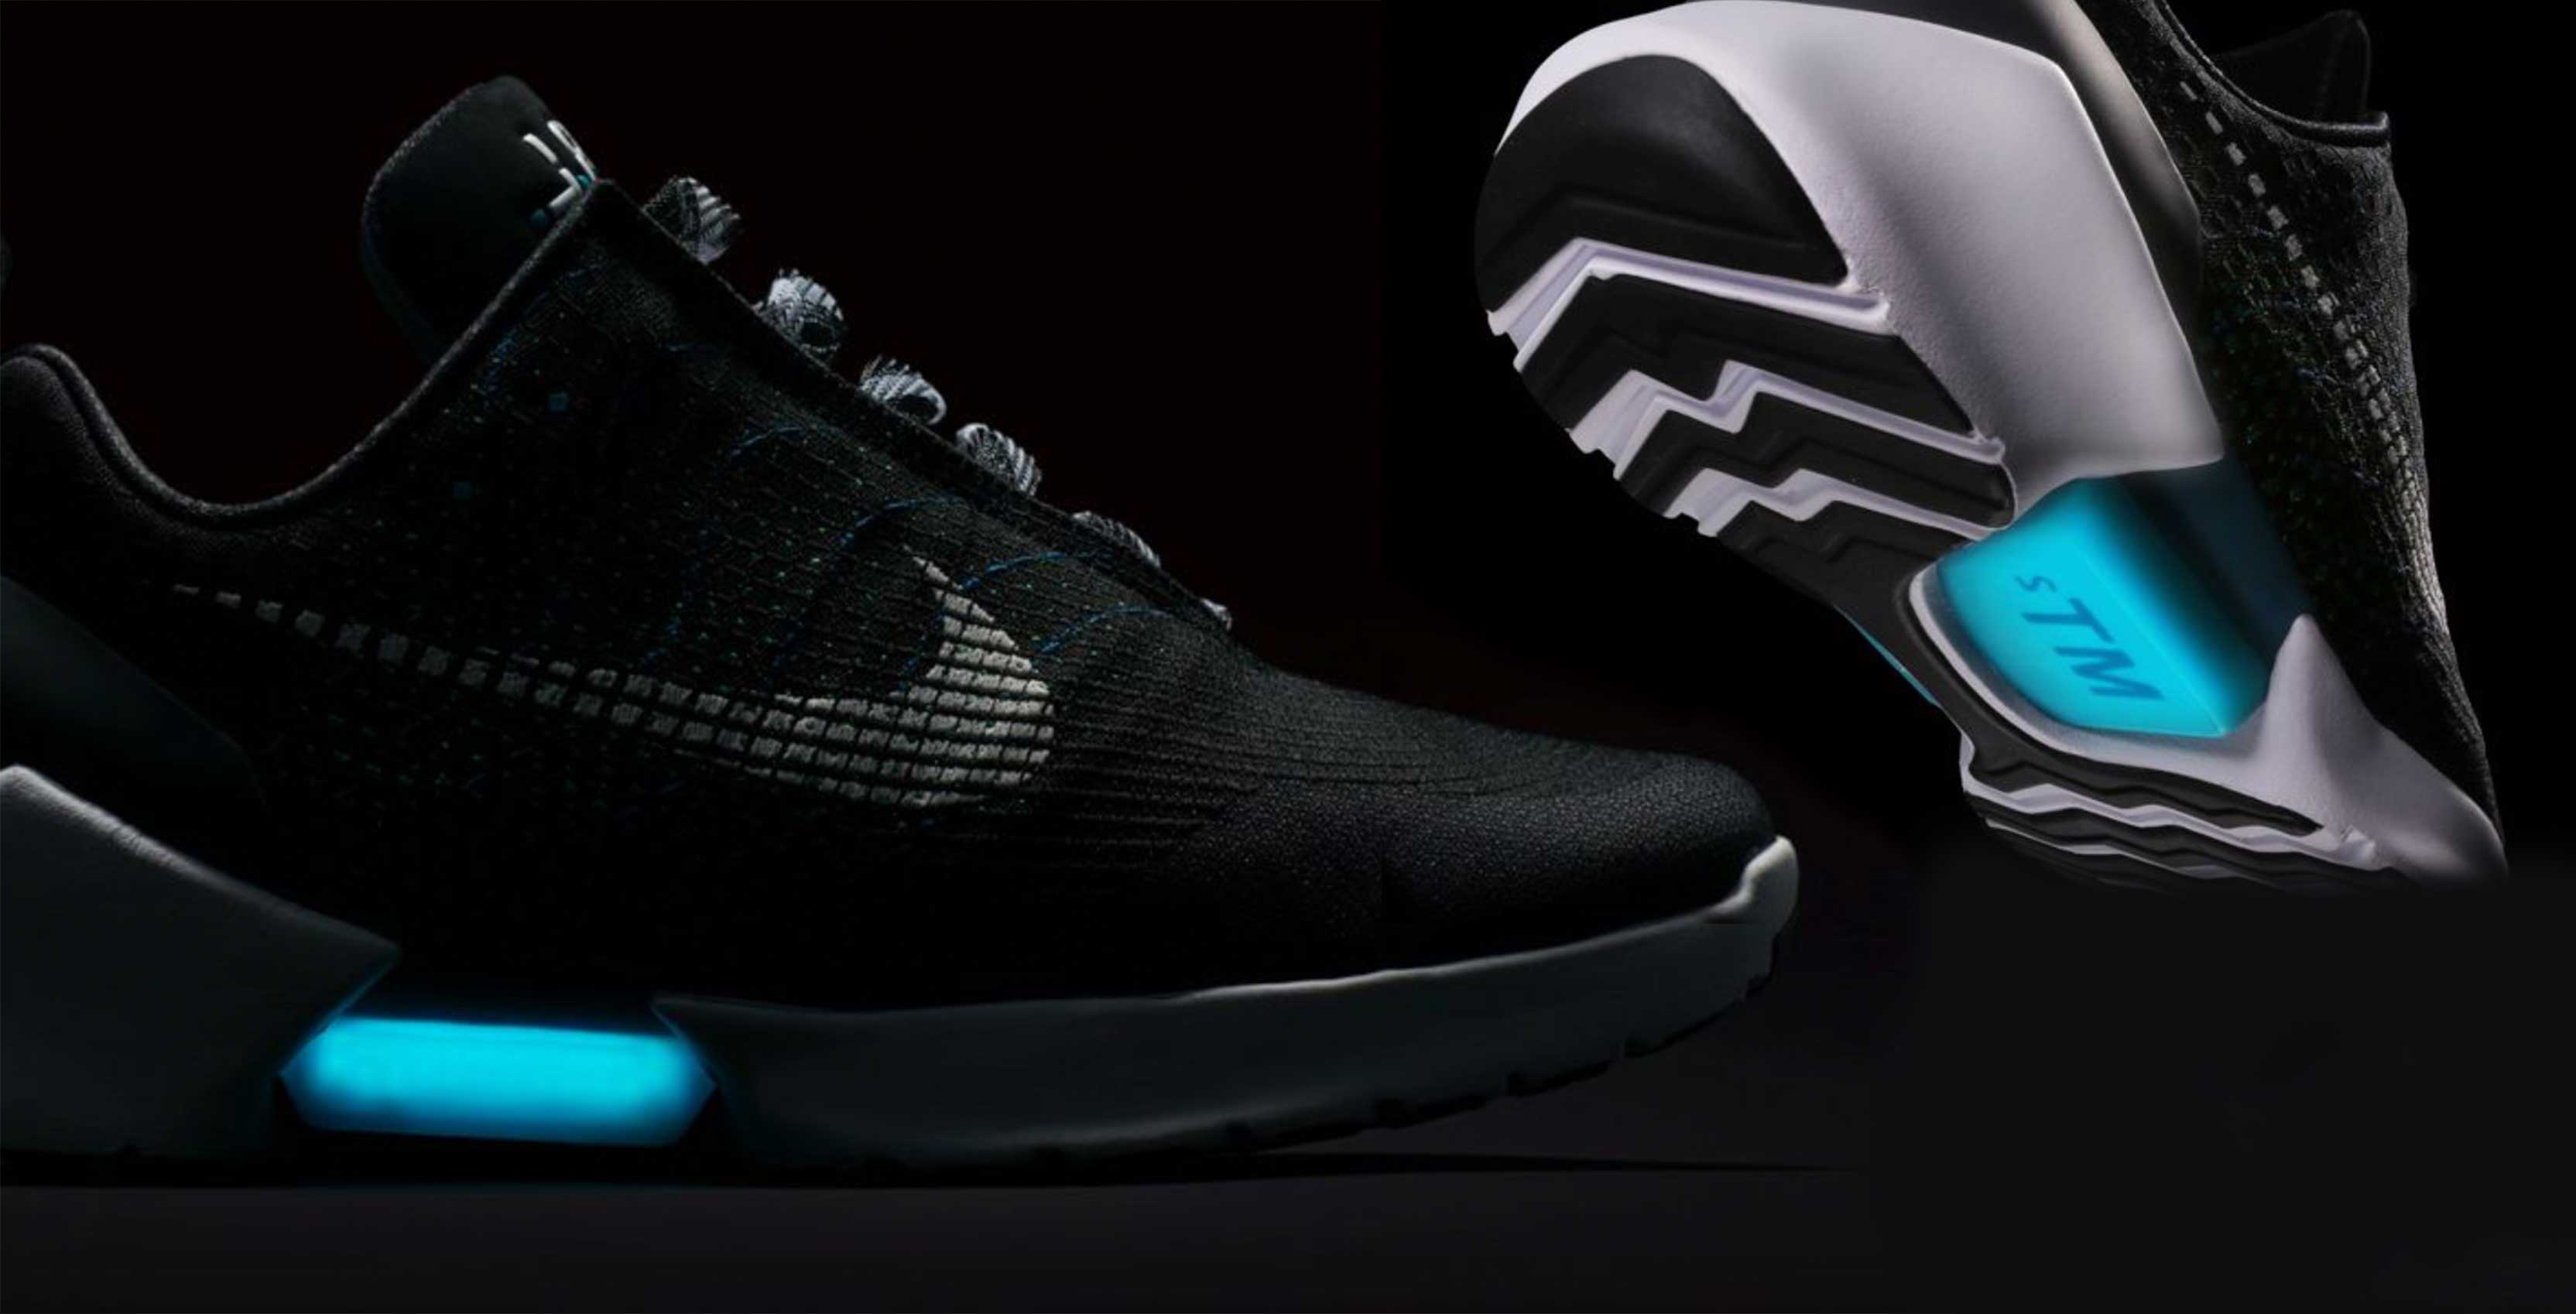 e0aeef0de01 It looks like Nike is going to take another crack at self-lacing shoes